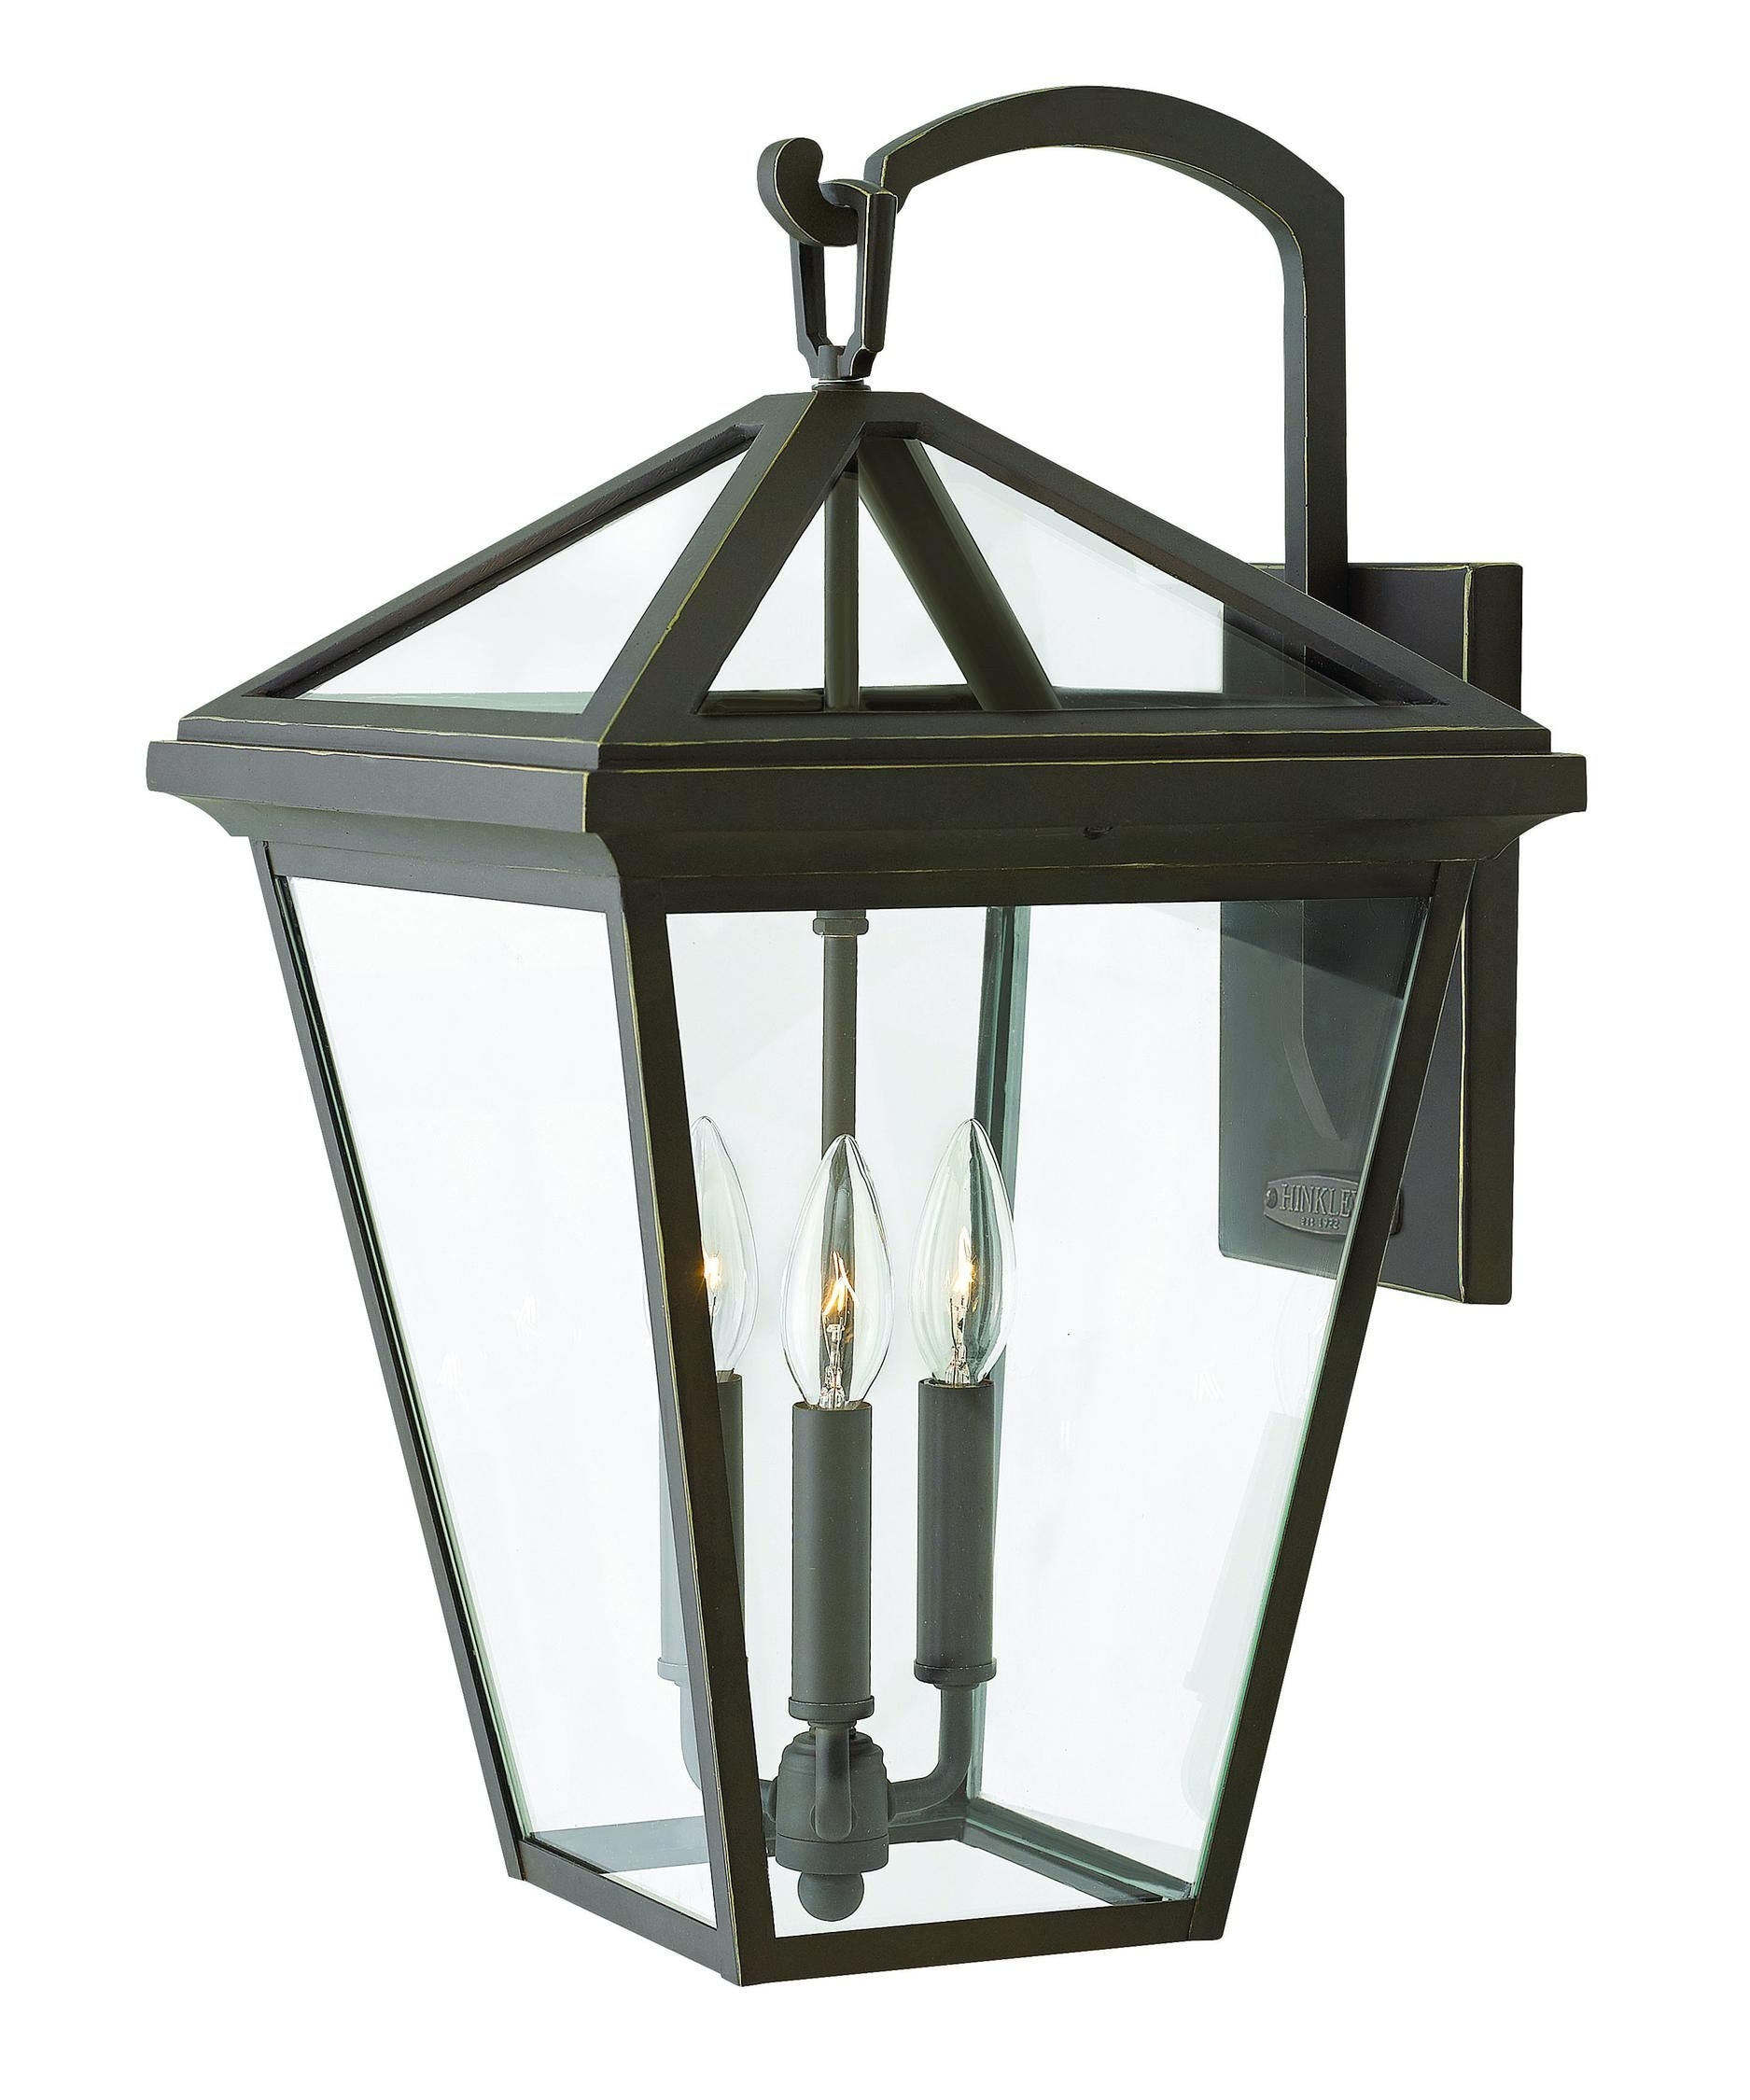 Hinkley Lighting 2565 Alford Place 3 Light Outdoor Wall Light | Pool Inside Extra Large Wall Mount Porch Hinkley Lighting (View 5 of 15)